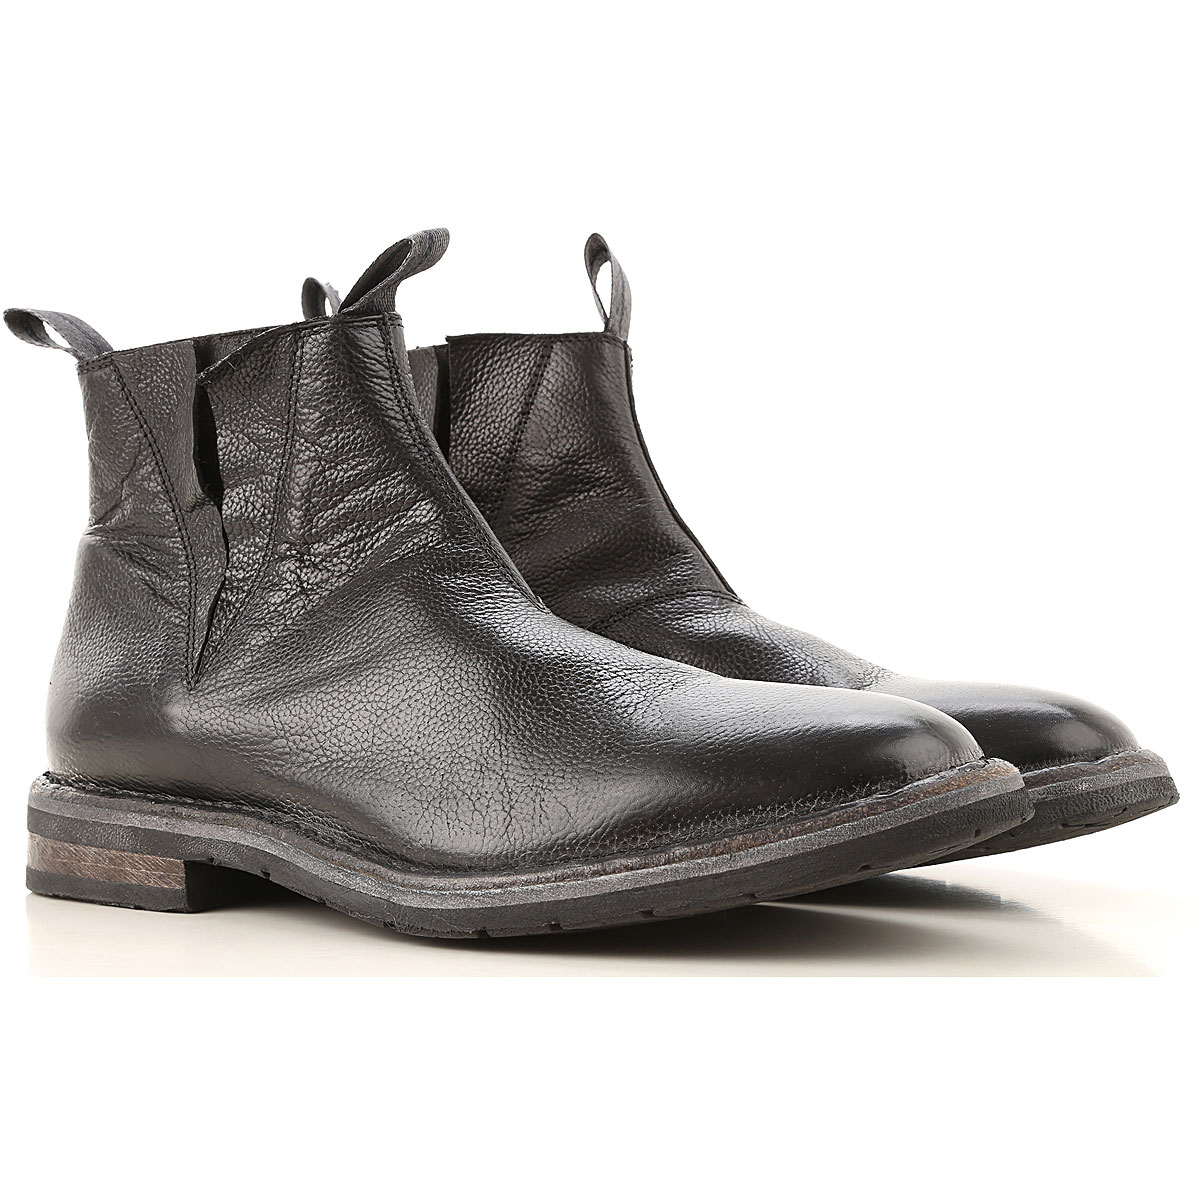 Moma Chelsea Boots for Men On Sale, Black, Leather, 2019, 10 8 9